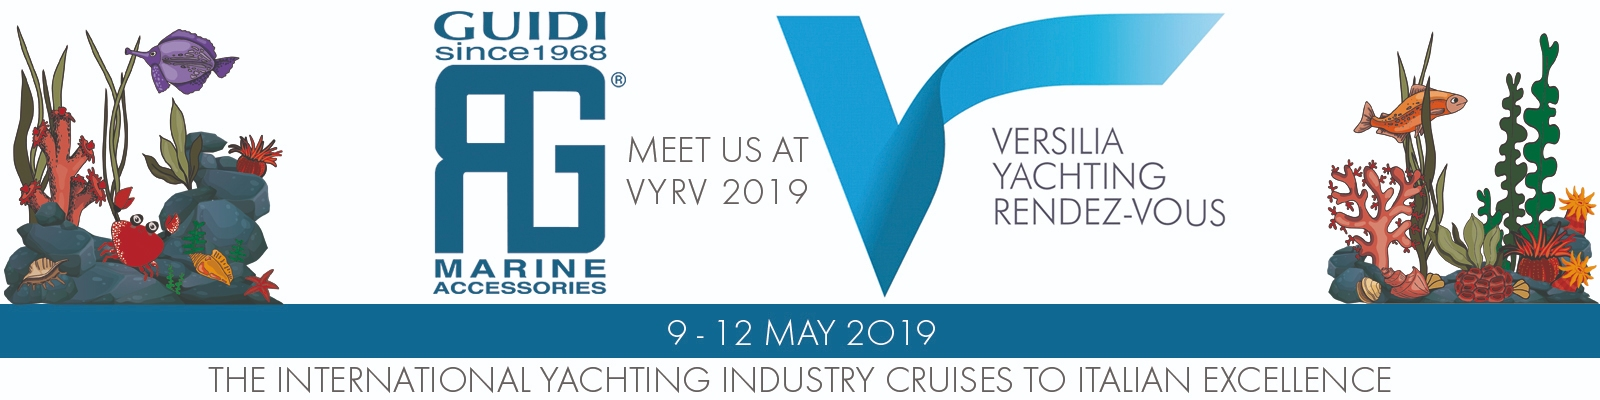 Save the Date VYRV 2019